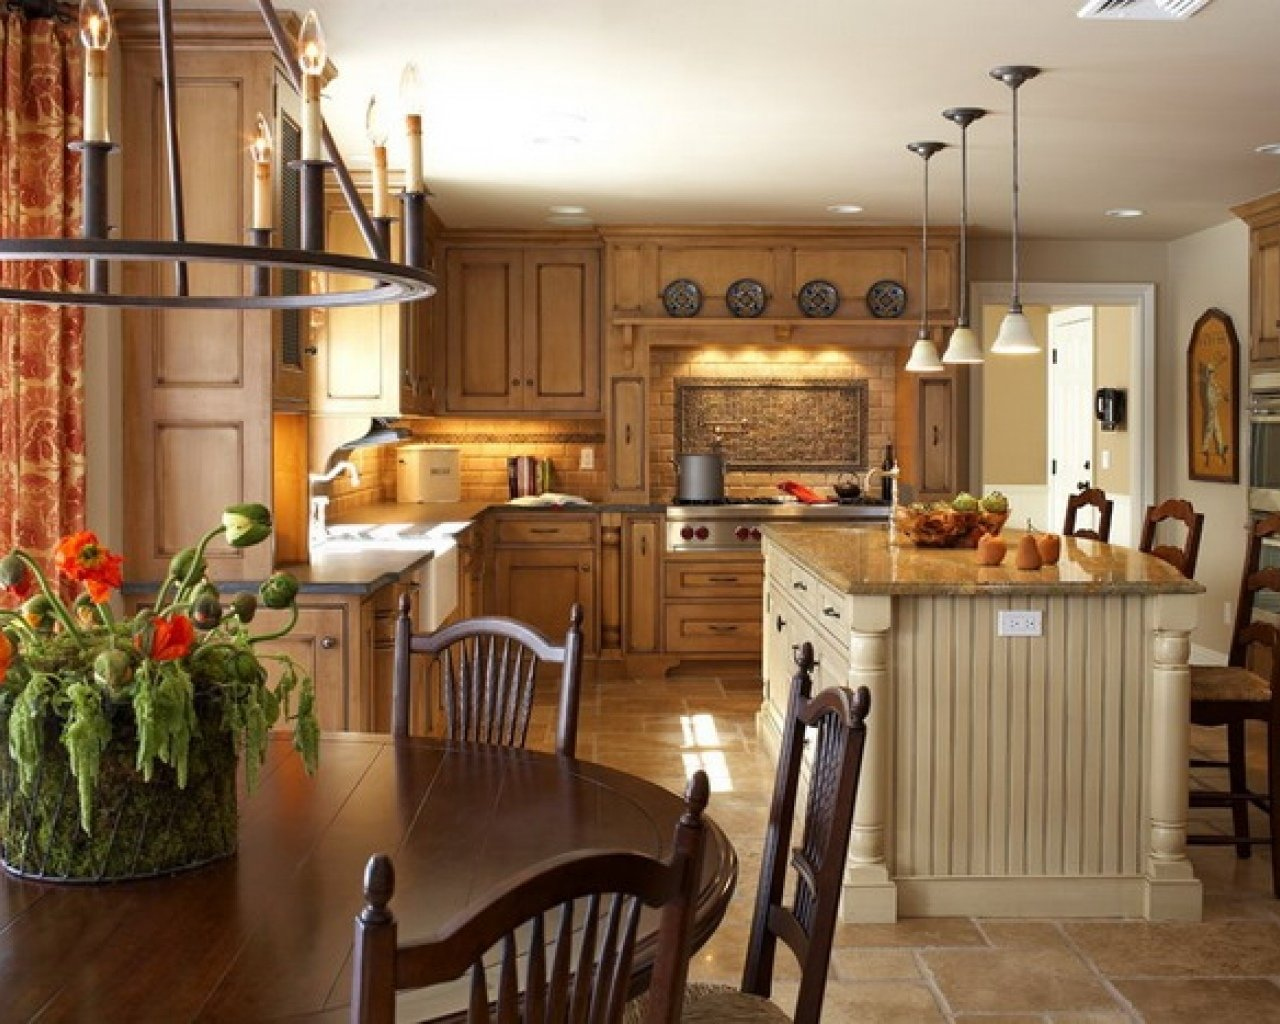 10 Most Popular Country Kitchen Decorating Ideas On A Budget amazing country kitchen decorating ideas about remodel resident 2020